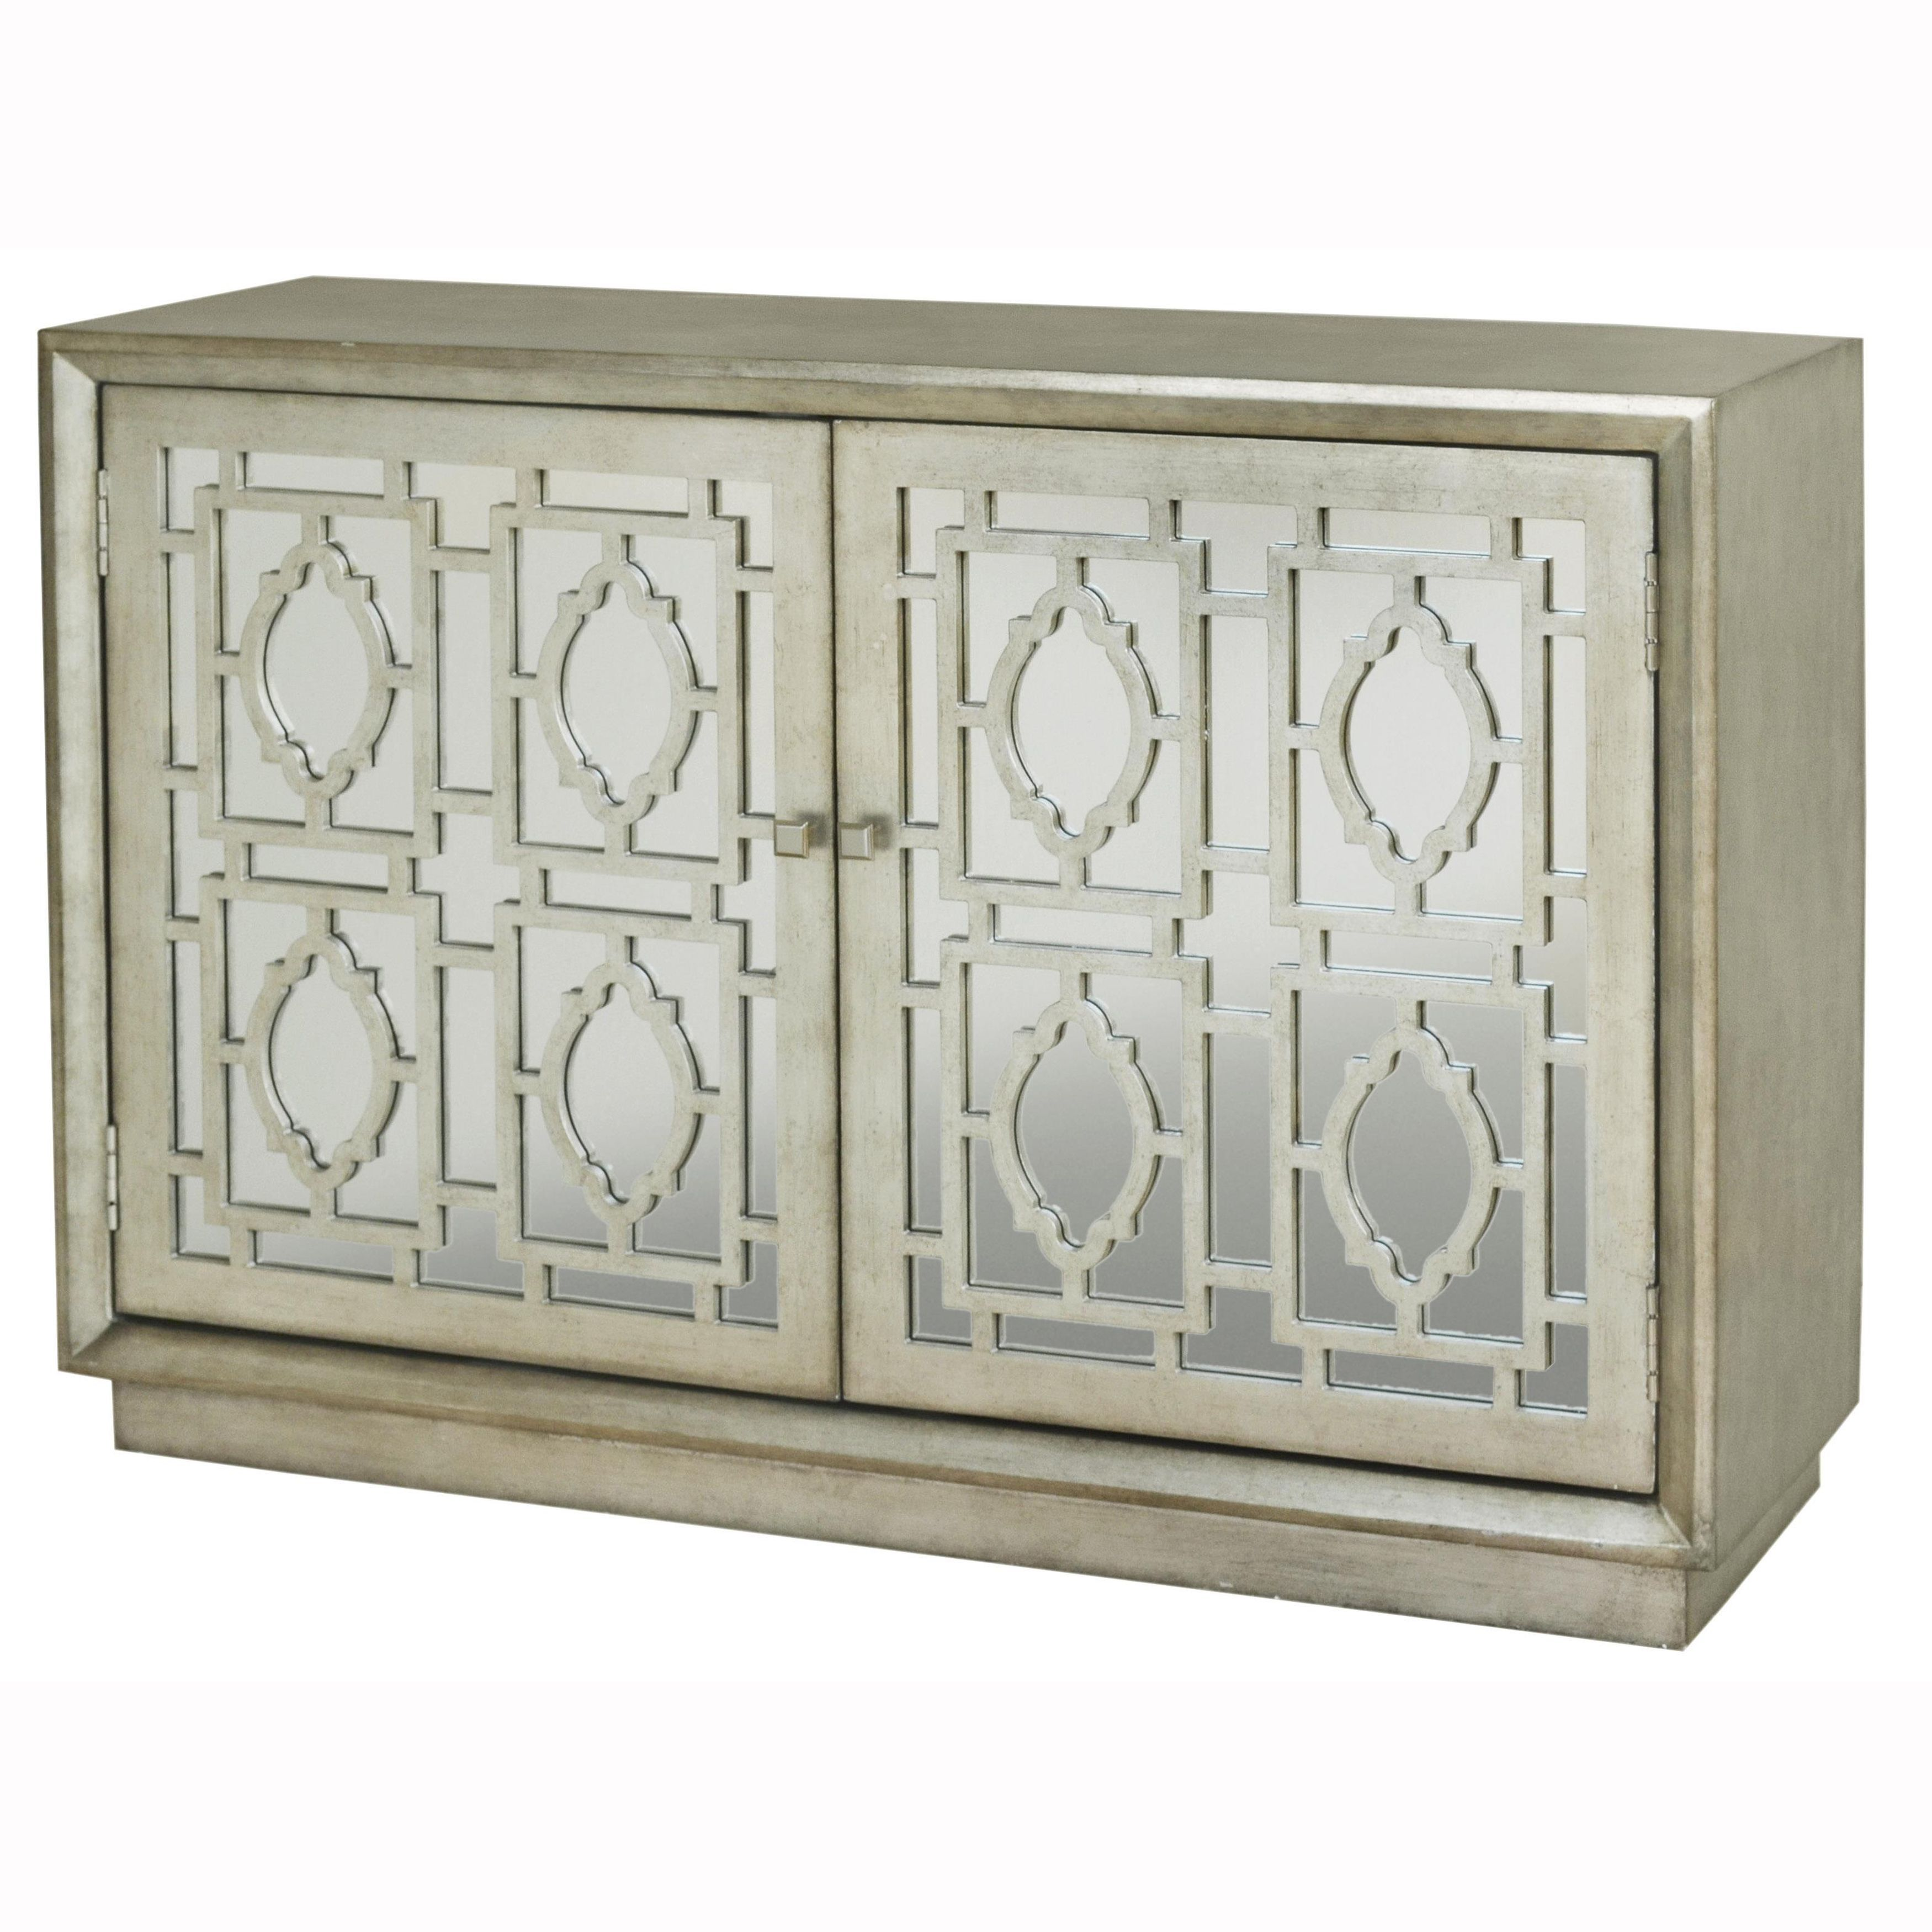 This hand painted distressed silver finish mirrored accent chest ...